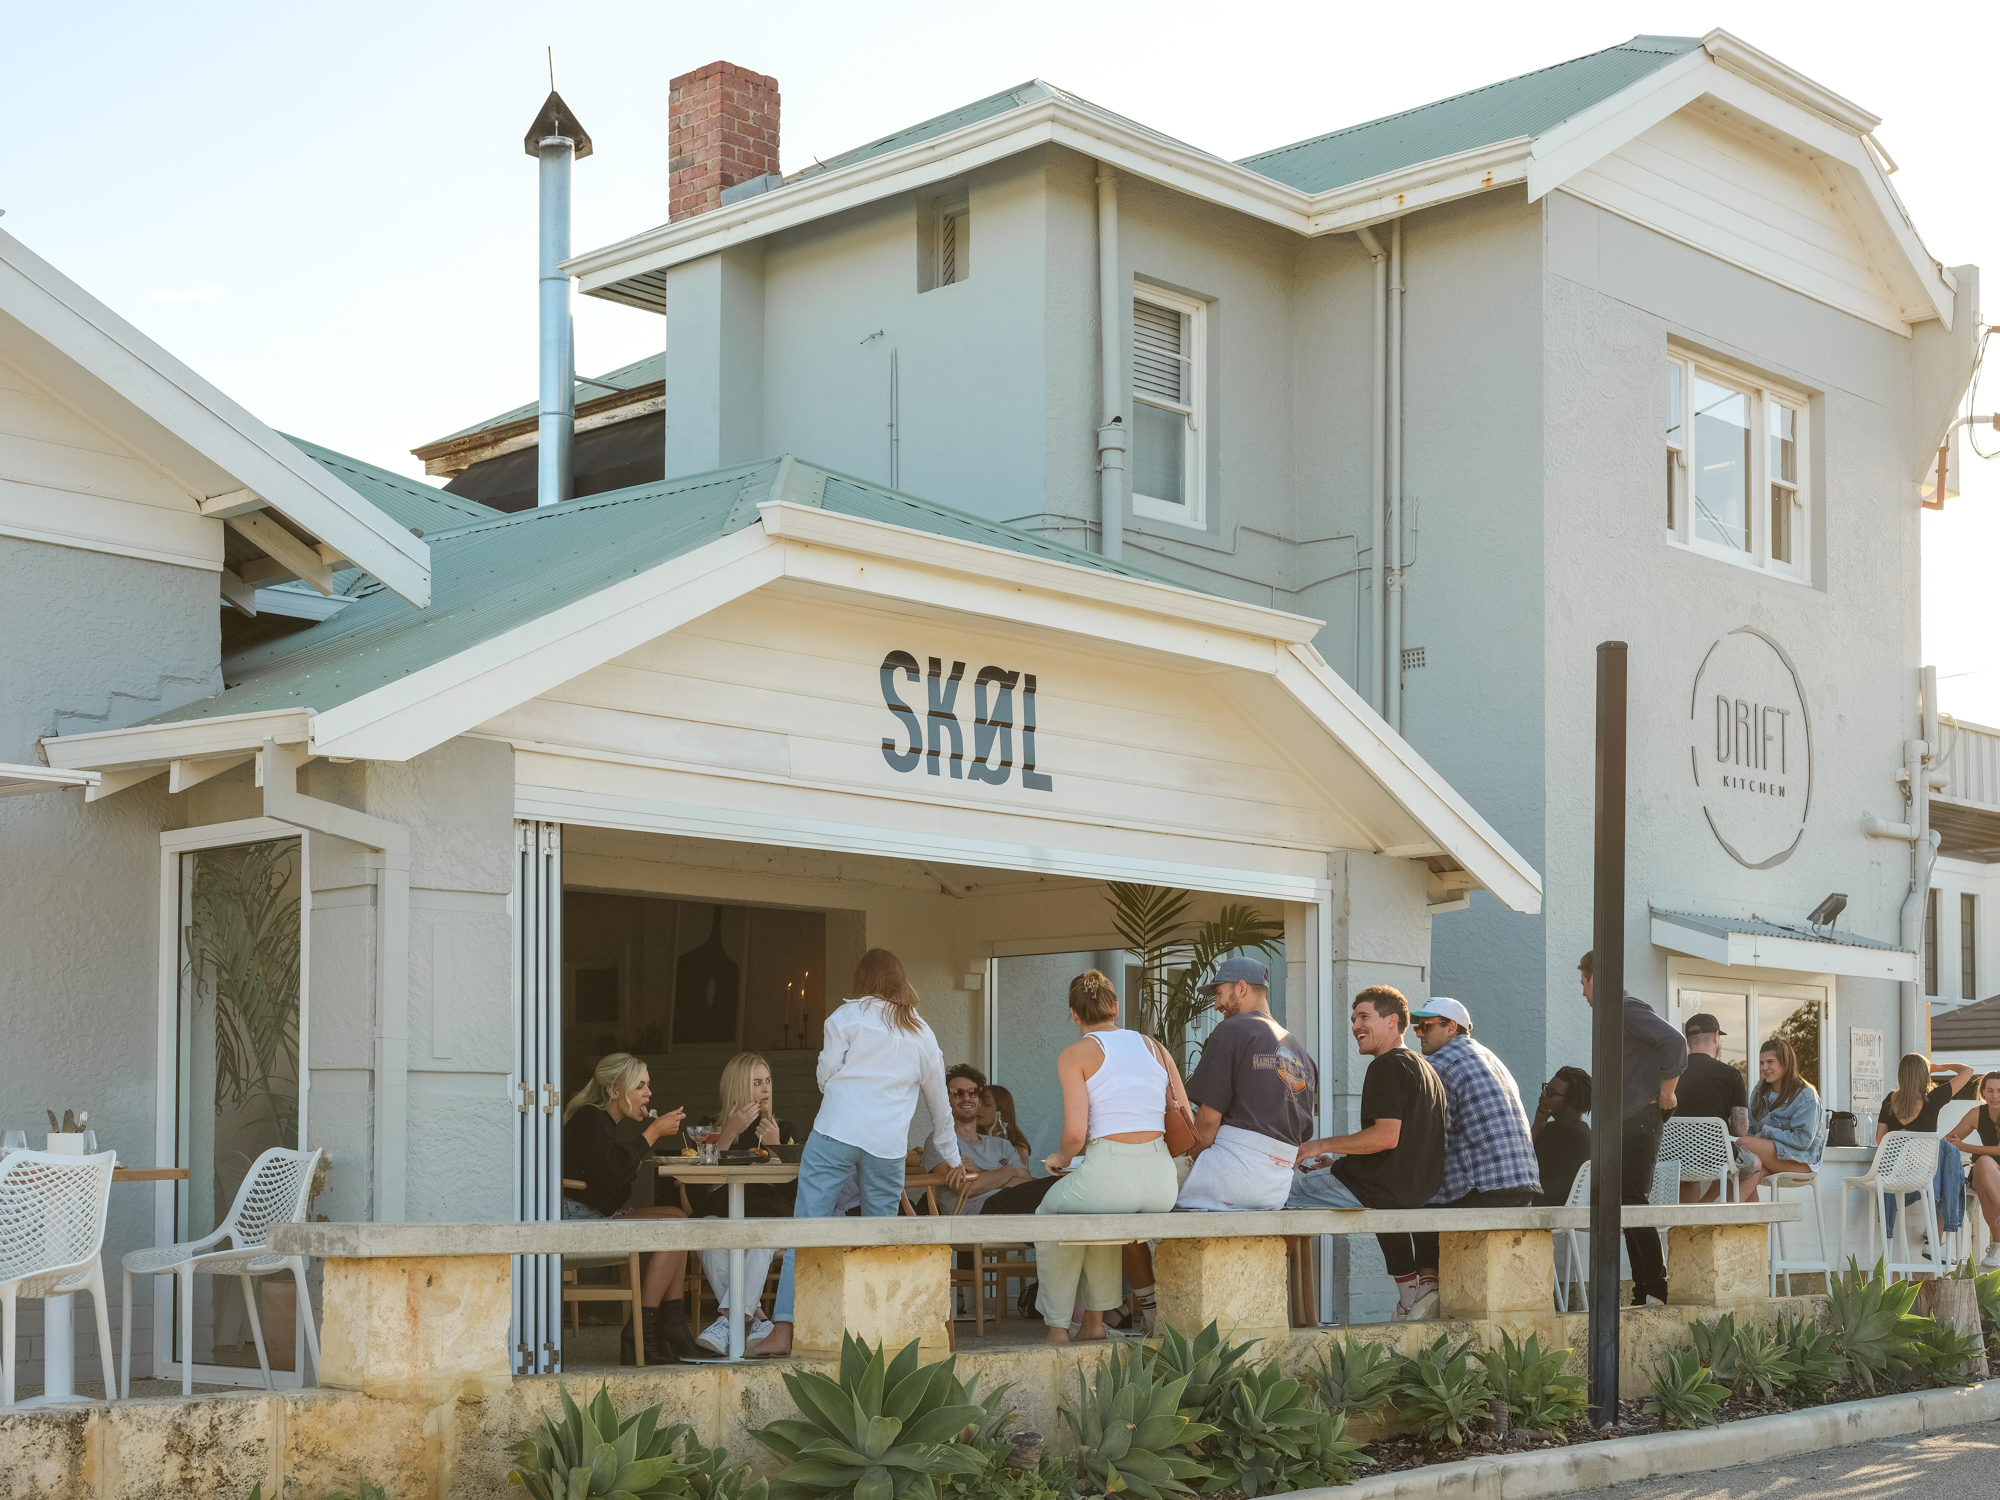 Skøl, a Scandinavian-influenced cocktail bar in Scarborough, a beachside suburb of Perth | Photography by Emma Pegrum